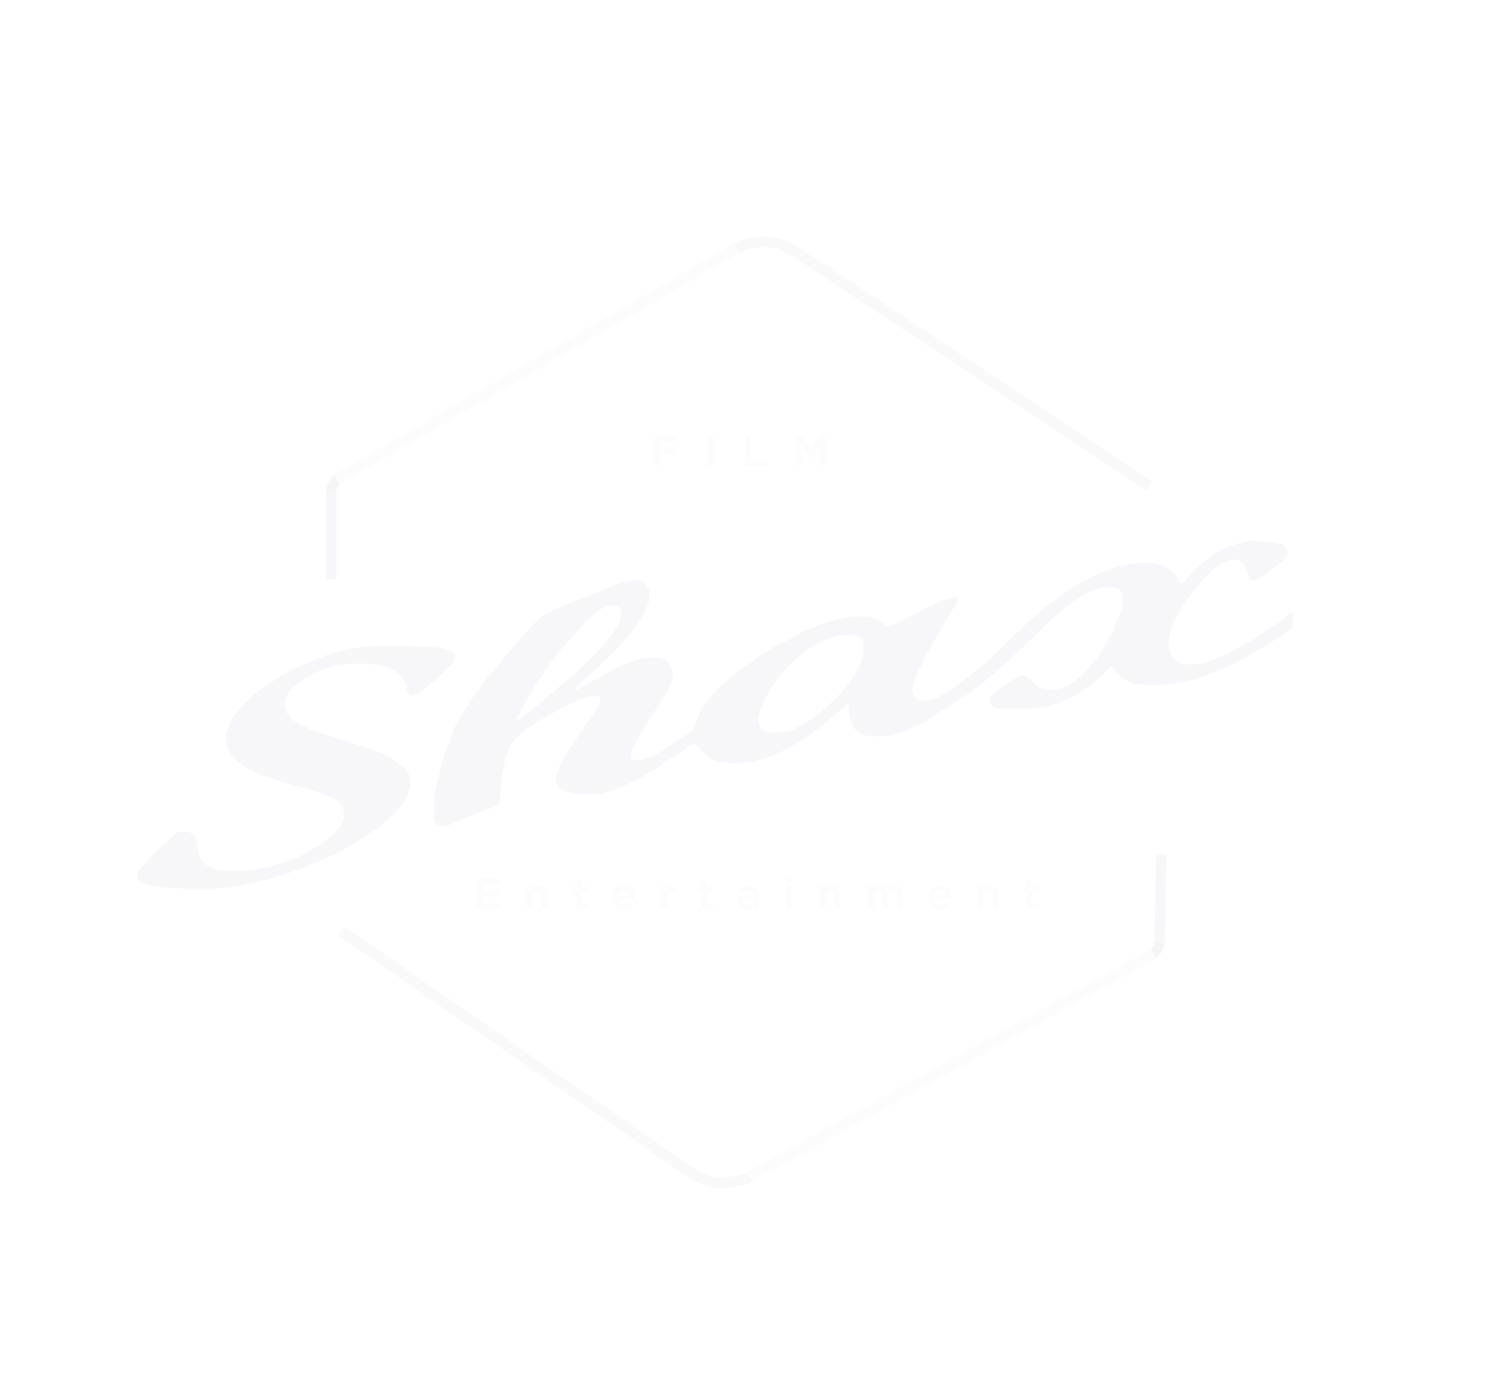 Shax Entertainment